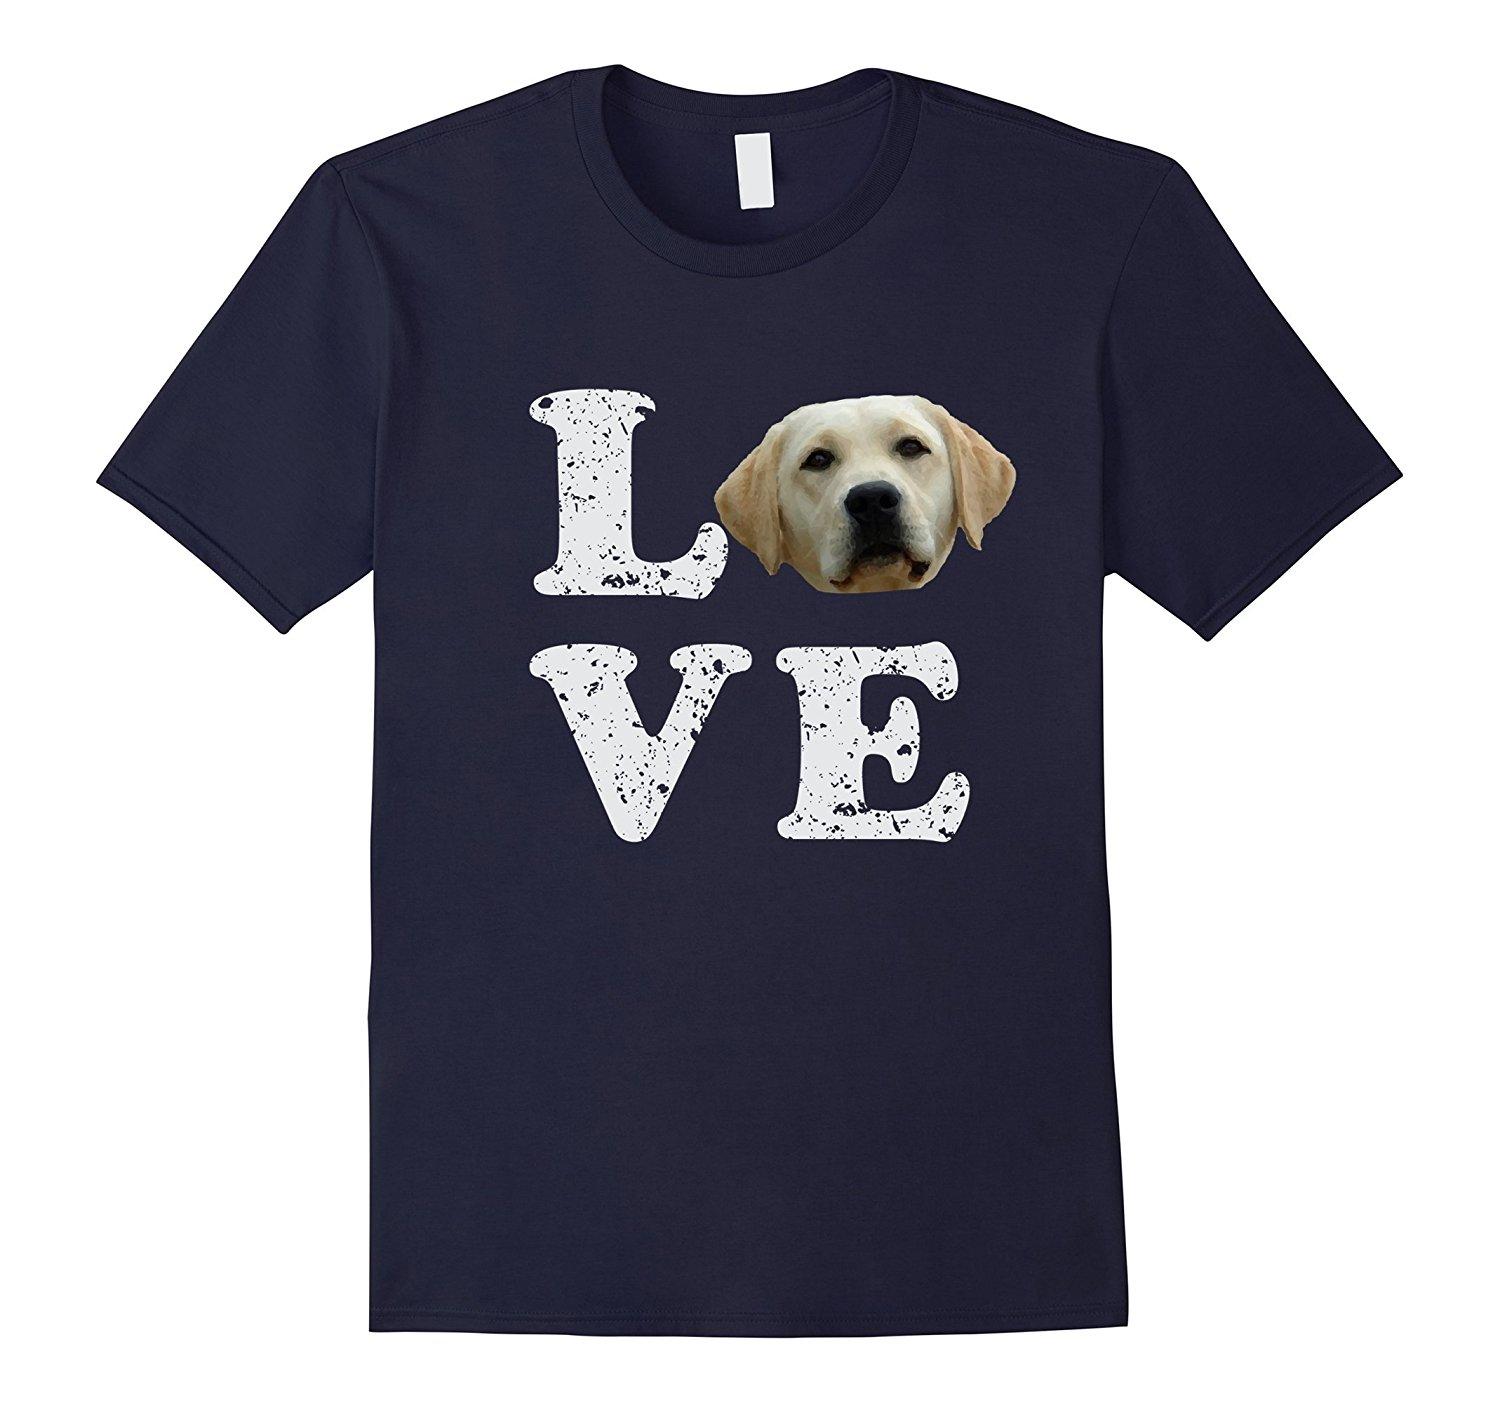 Yellow Lab Dogs For Sale Us 12 06 5 Off 2018 Hot Sale Fashion 100 Cotton I Love My Yellow Lab T Shirt Labrador Retriever Dog Tee Tee Shirt In T Shirts From Men S Clothing